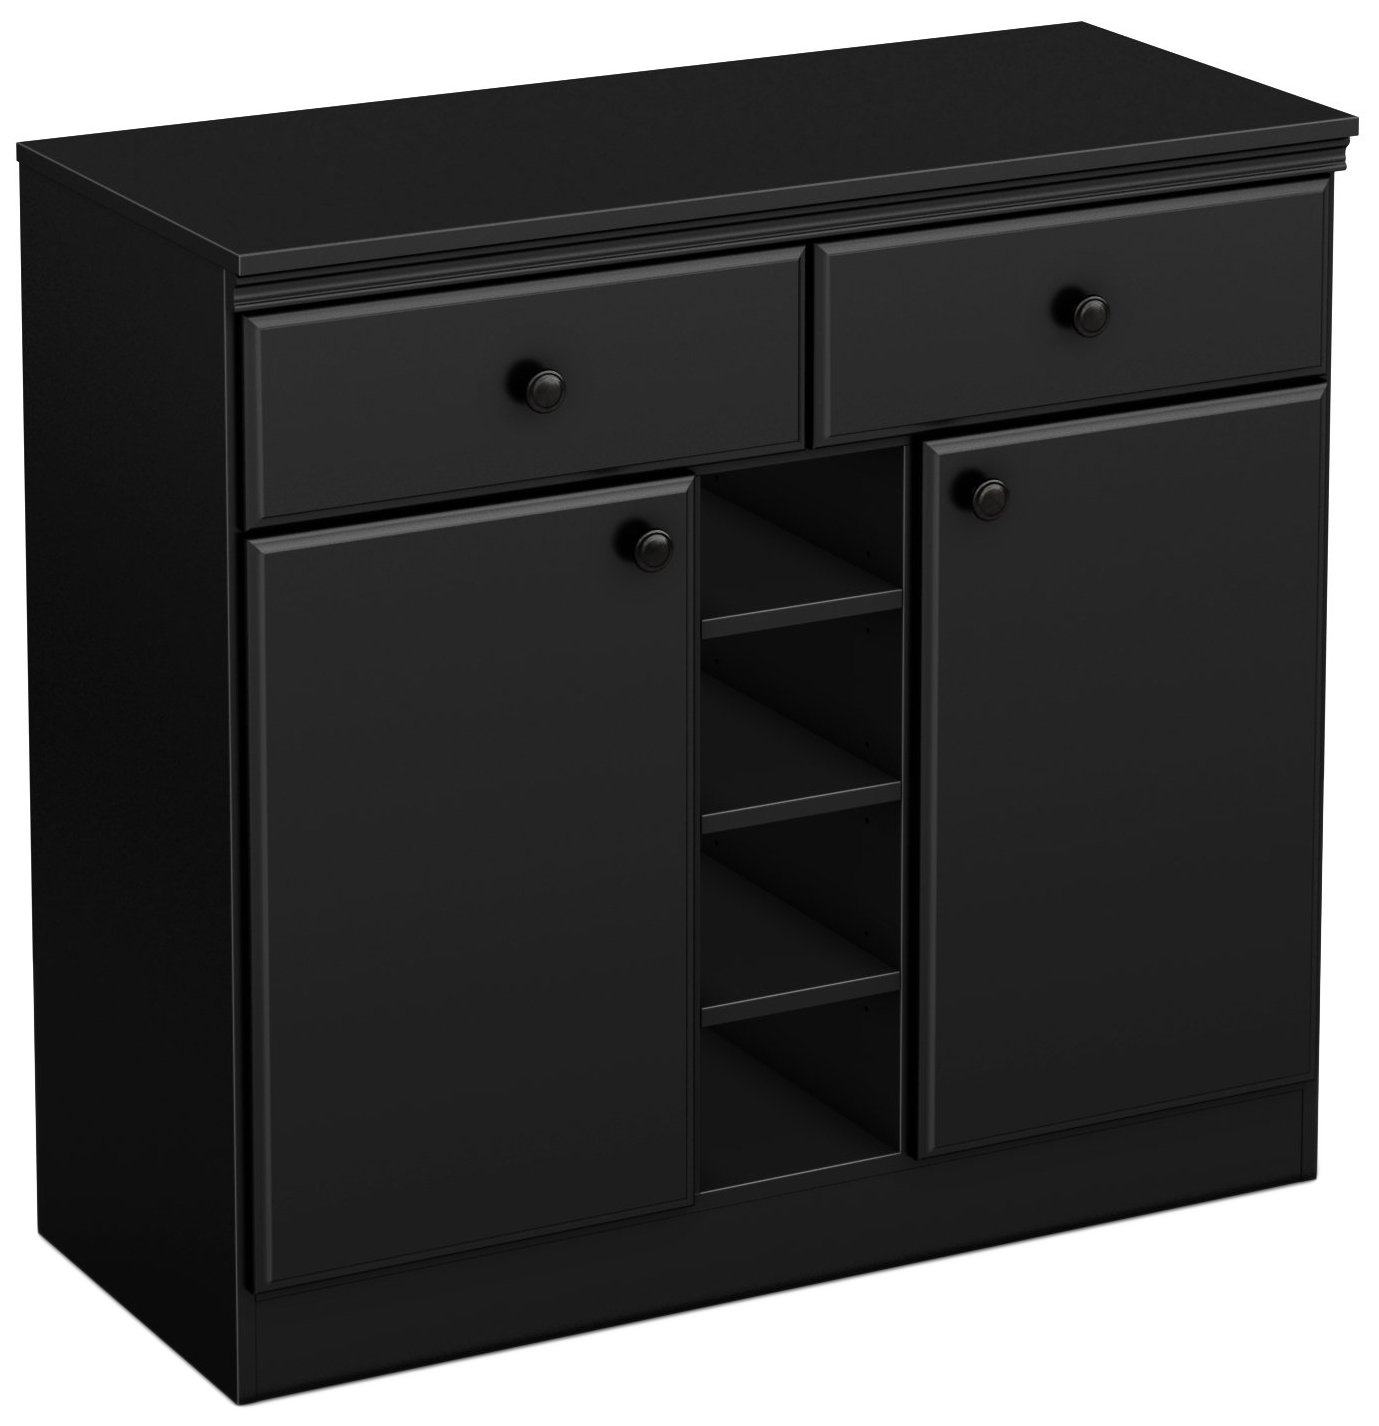 South Shore 2-Door Storage Sideboard with Drawers, Pure Black 7270770